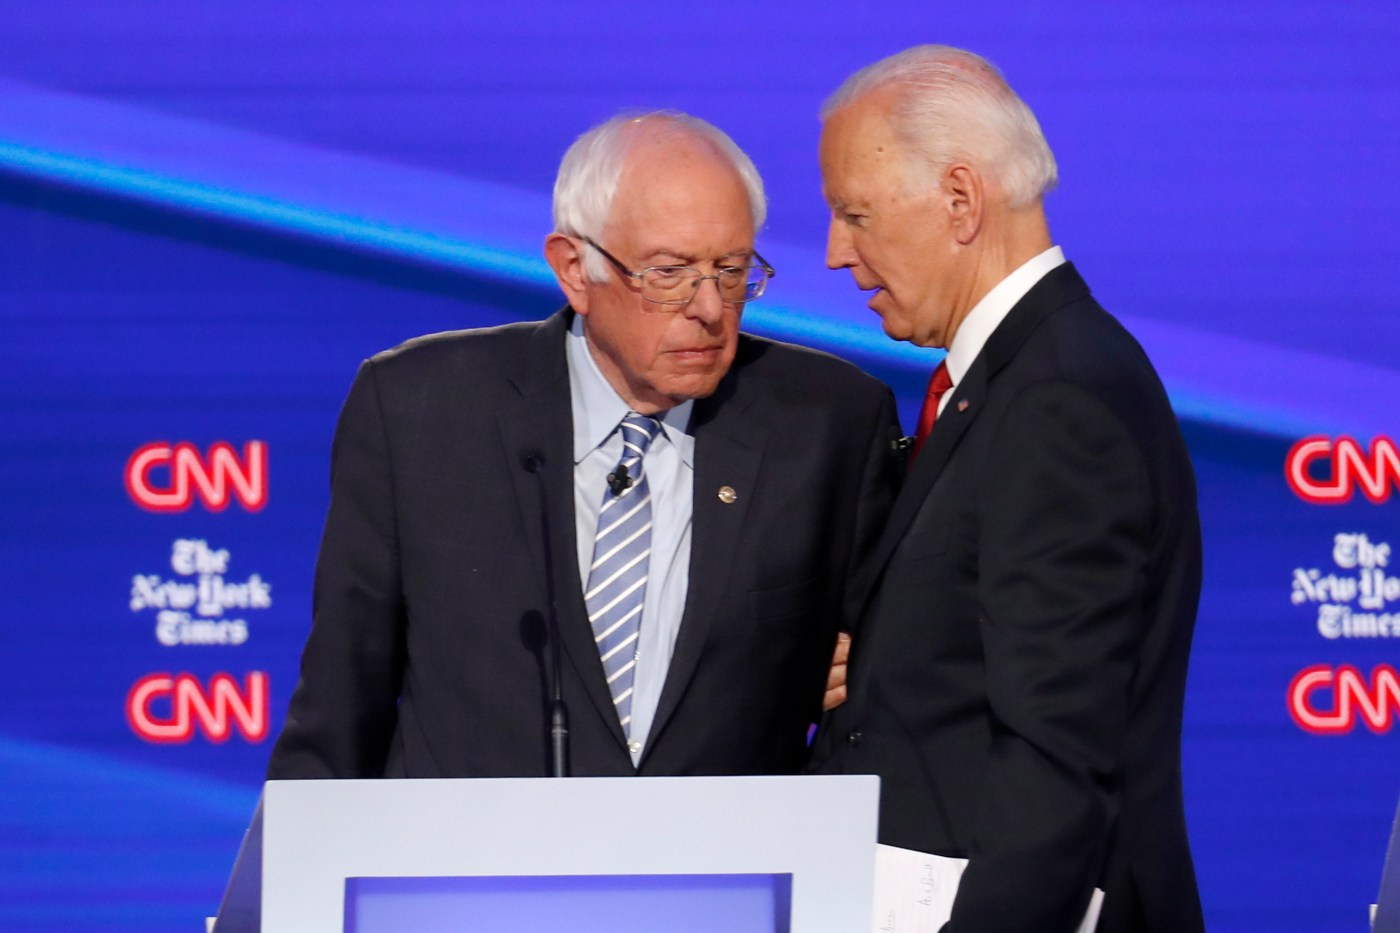 Why Bernie Sanders seems younger than Joe Biden - Washington Times